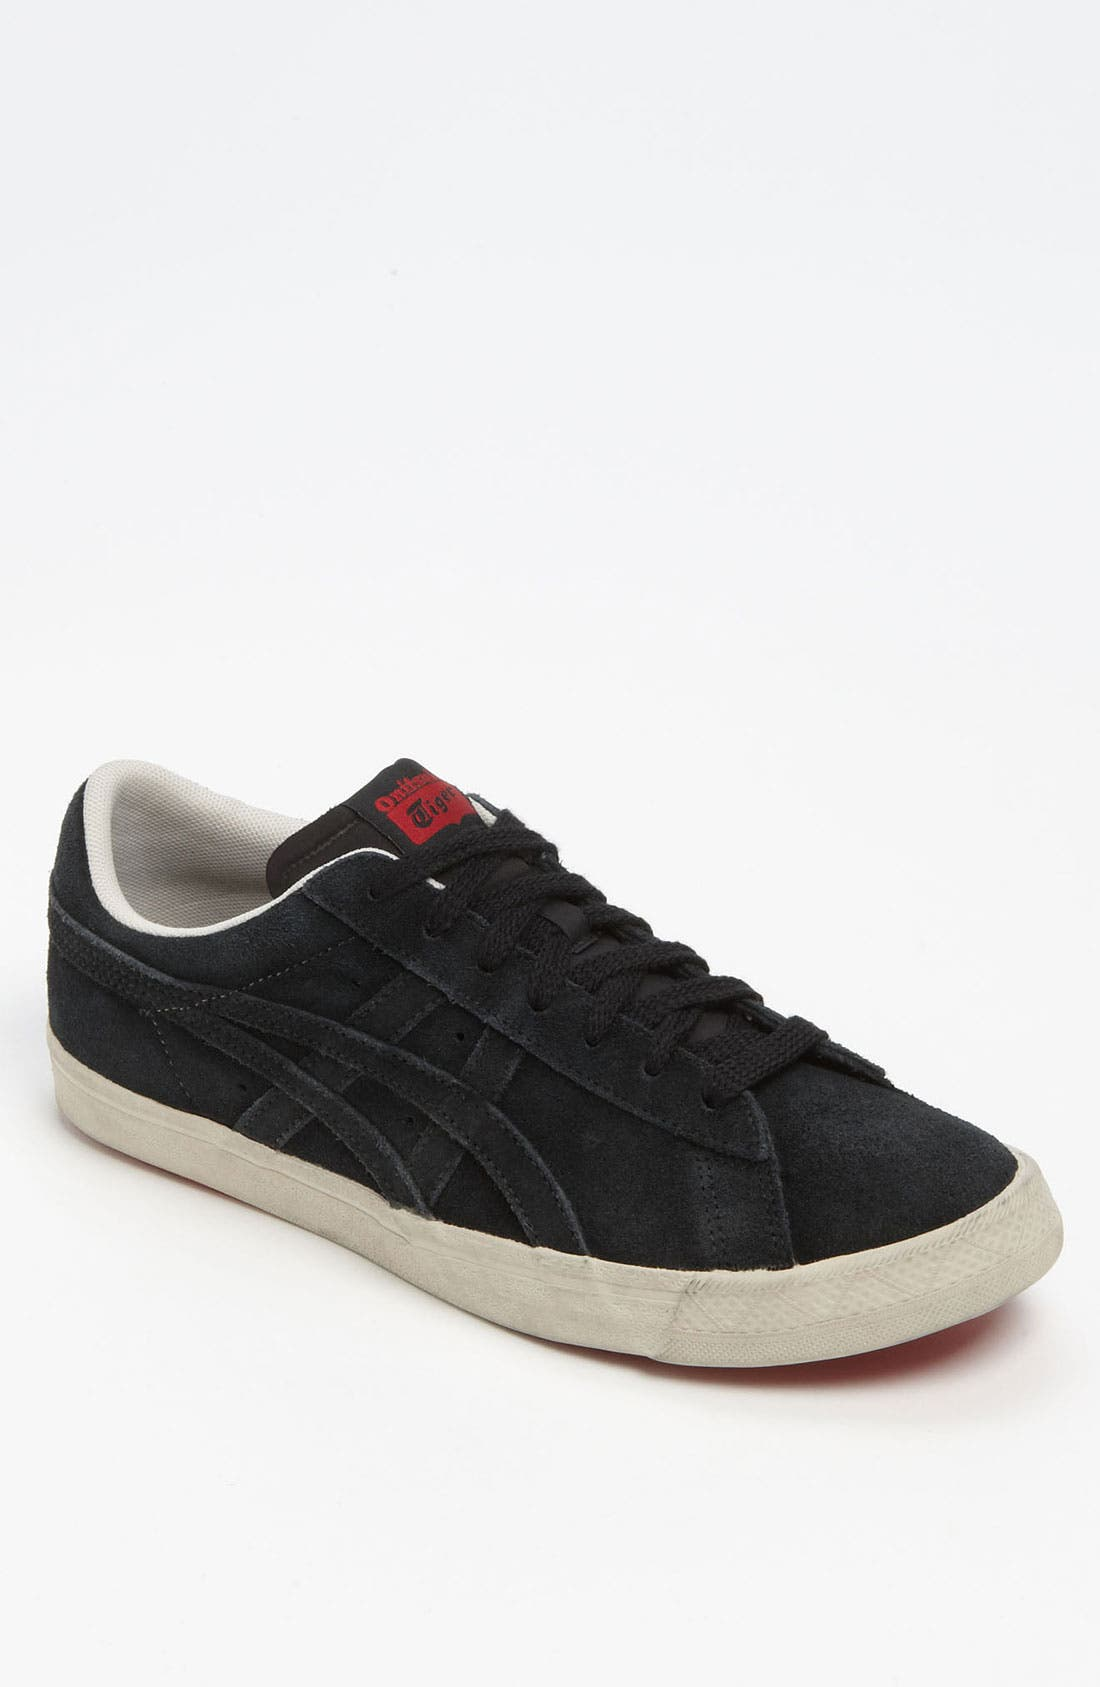 Alternate Image 1 Selected - Onitsuka Tiger™ 'Fabre BL-S' Sneaker (Men)